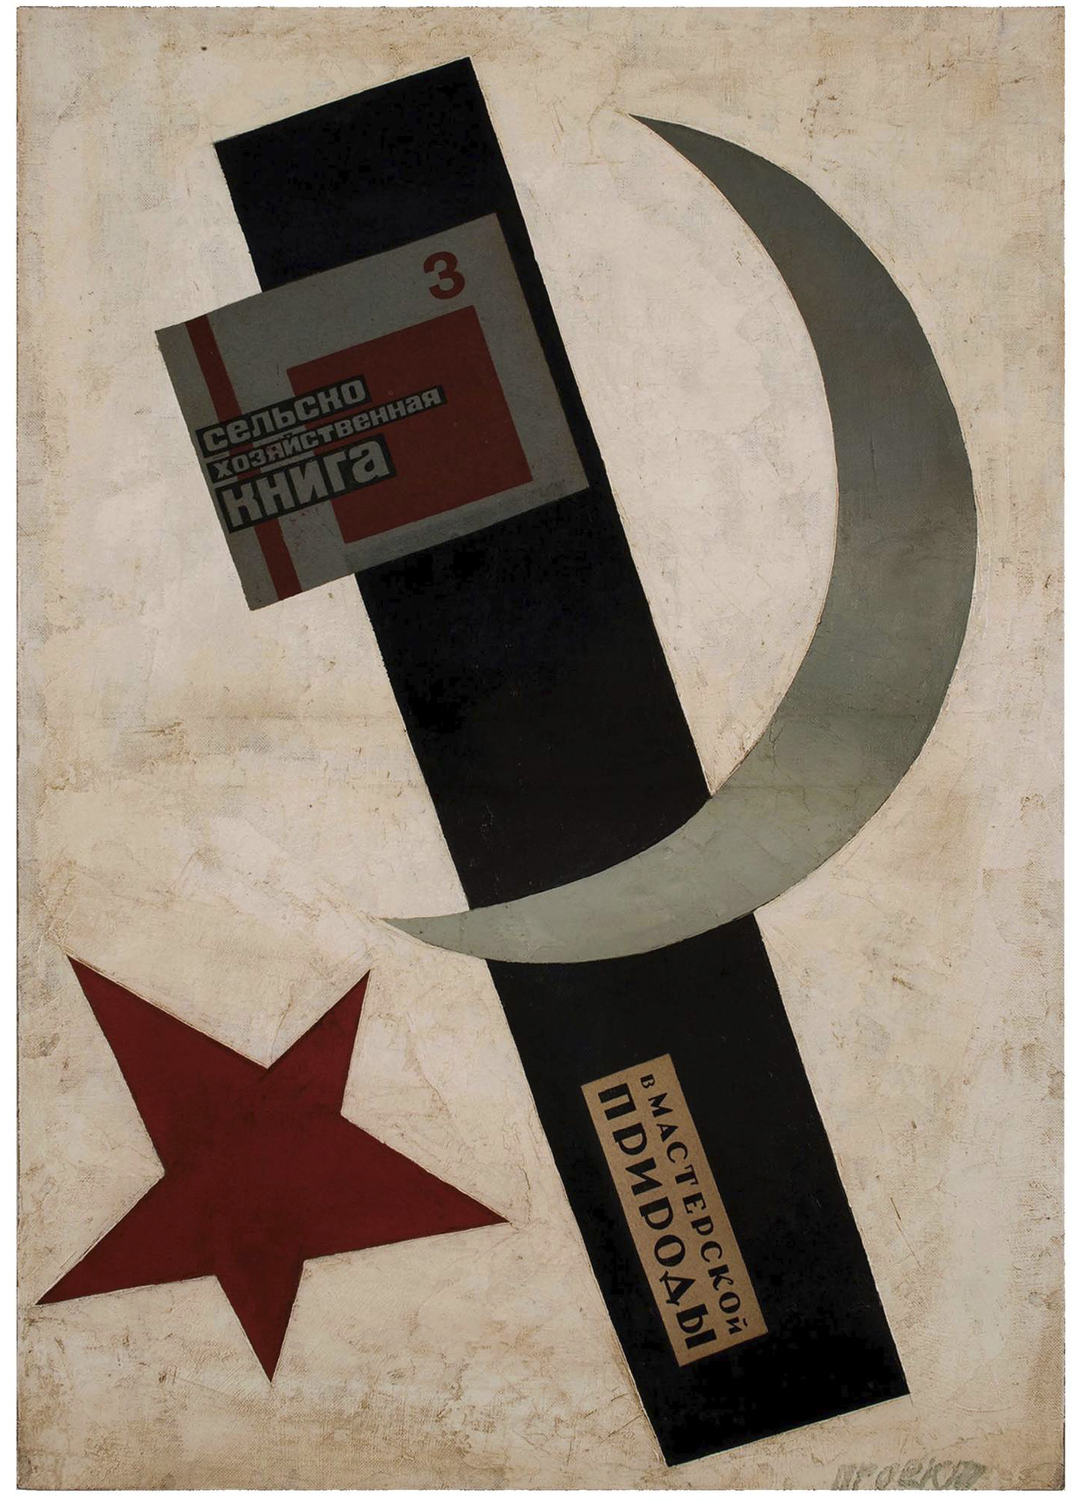 """Unattributed. Unsigned.In the style of El Lissitzky. Text in Russian, lower right front, translates to """"Project"""". Mixed media canvas. 59 x 37 cm."""